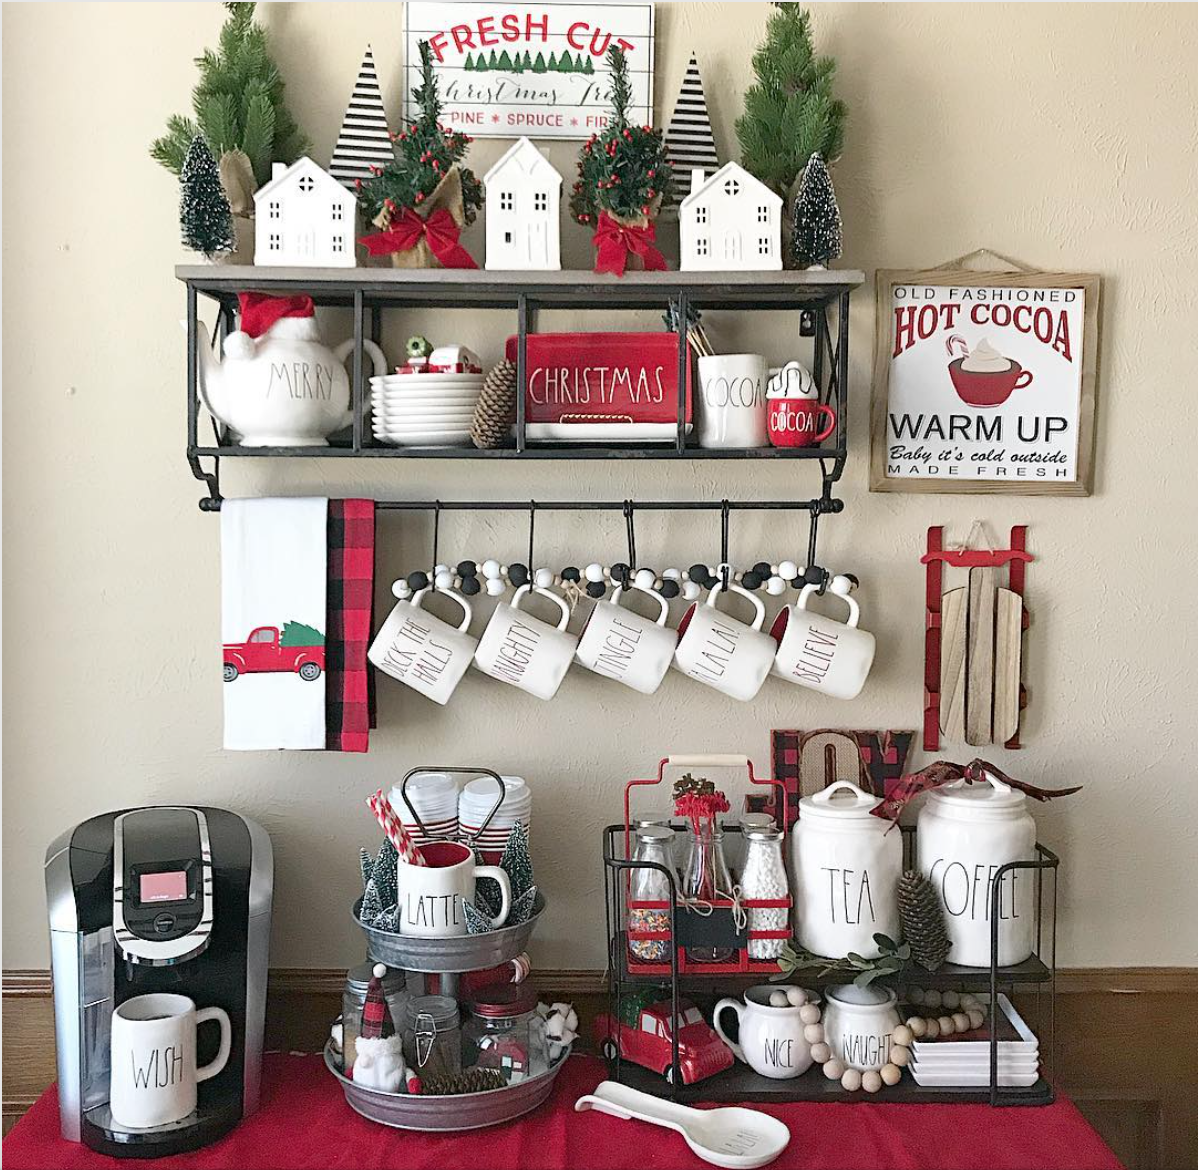 Now This Coffee Station Has All The Christmas Vibes With The Cute Little Sign And All The Splashes Of Red And In 2020 Christmas Kitchen Coffee Bar Home Holiday Coffee